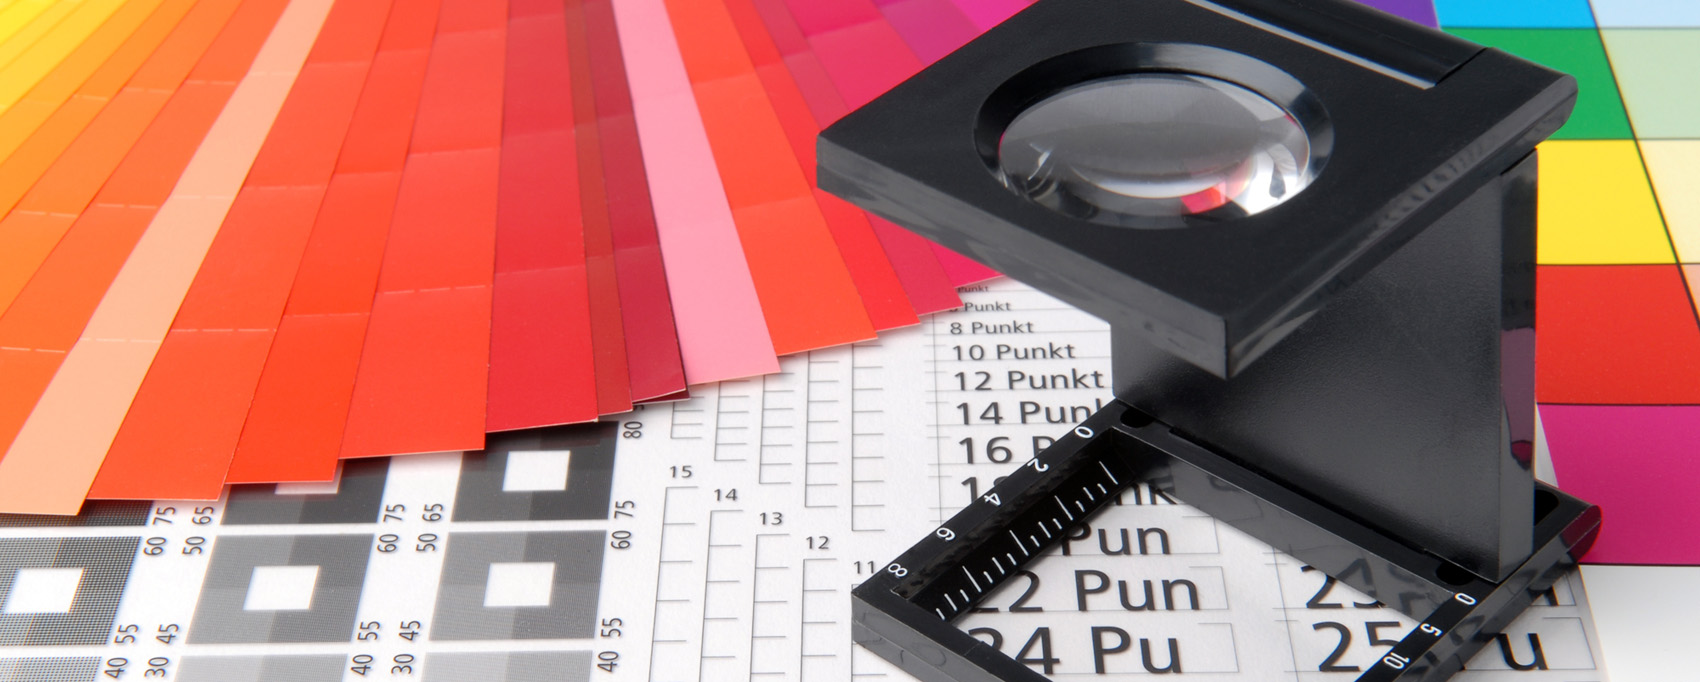 Graphic design and layout tools